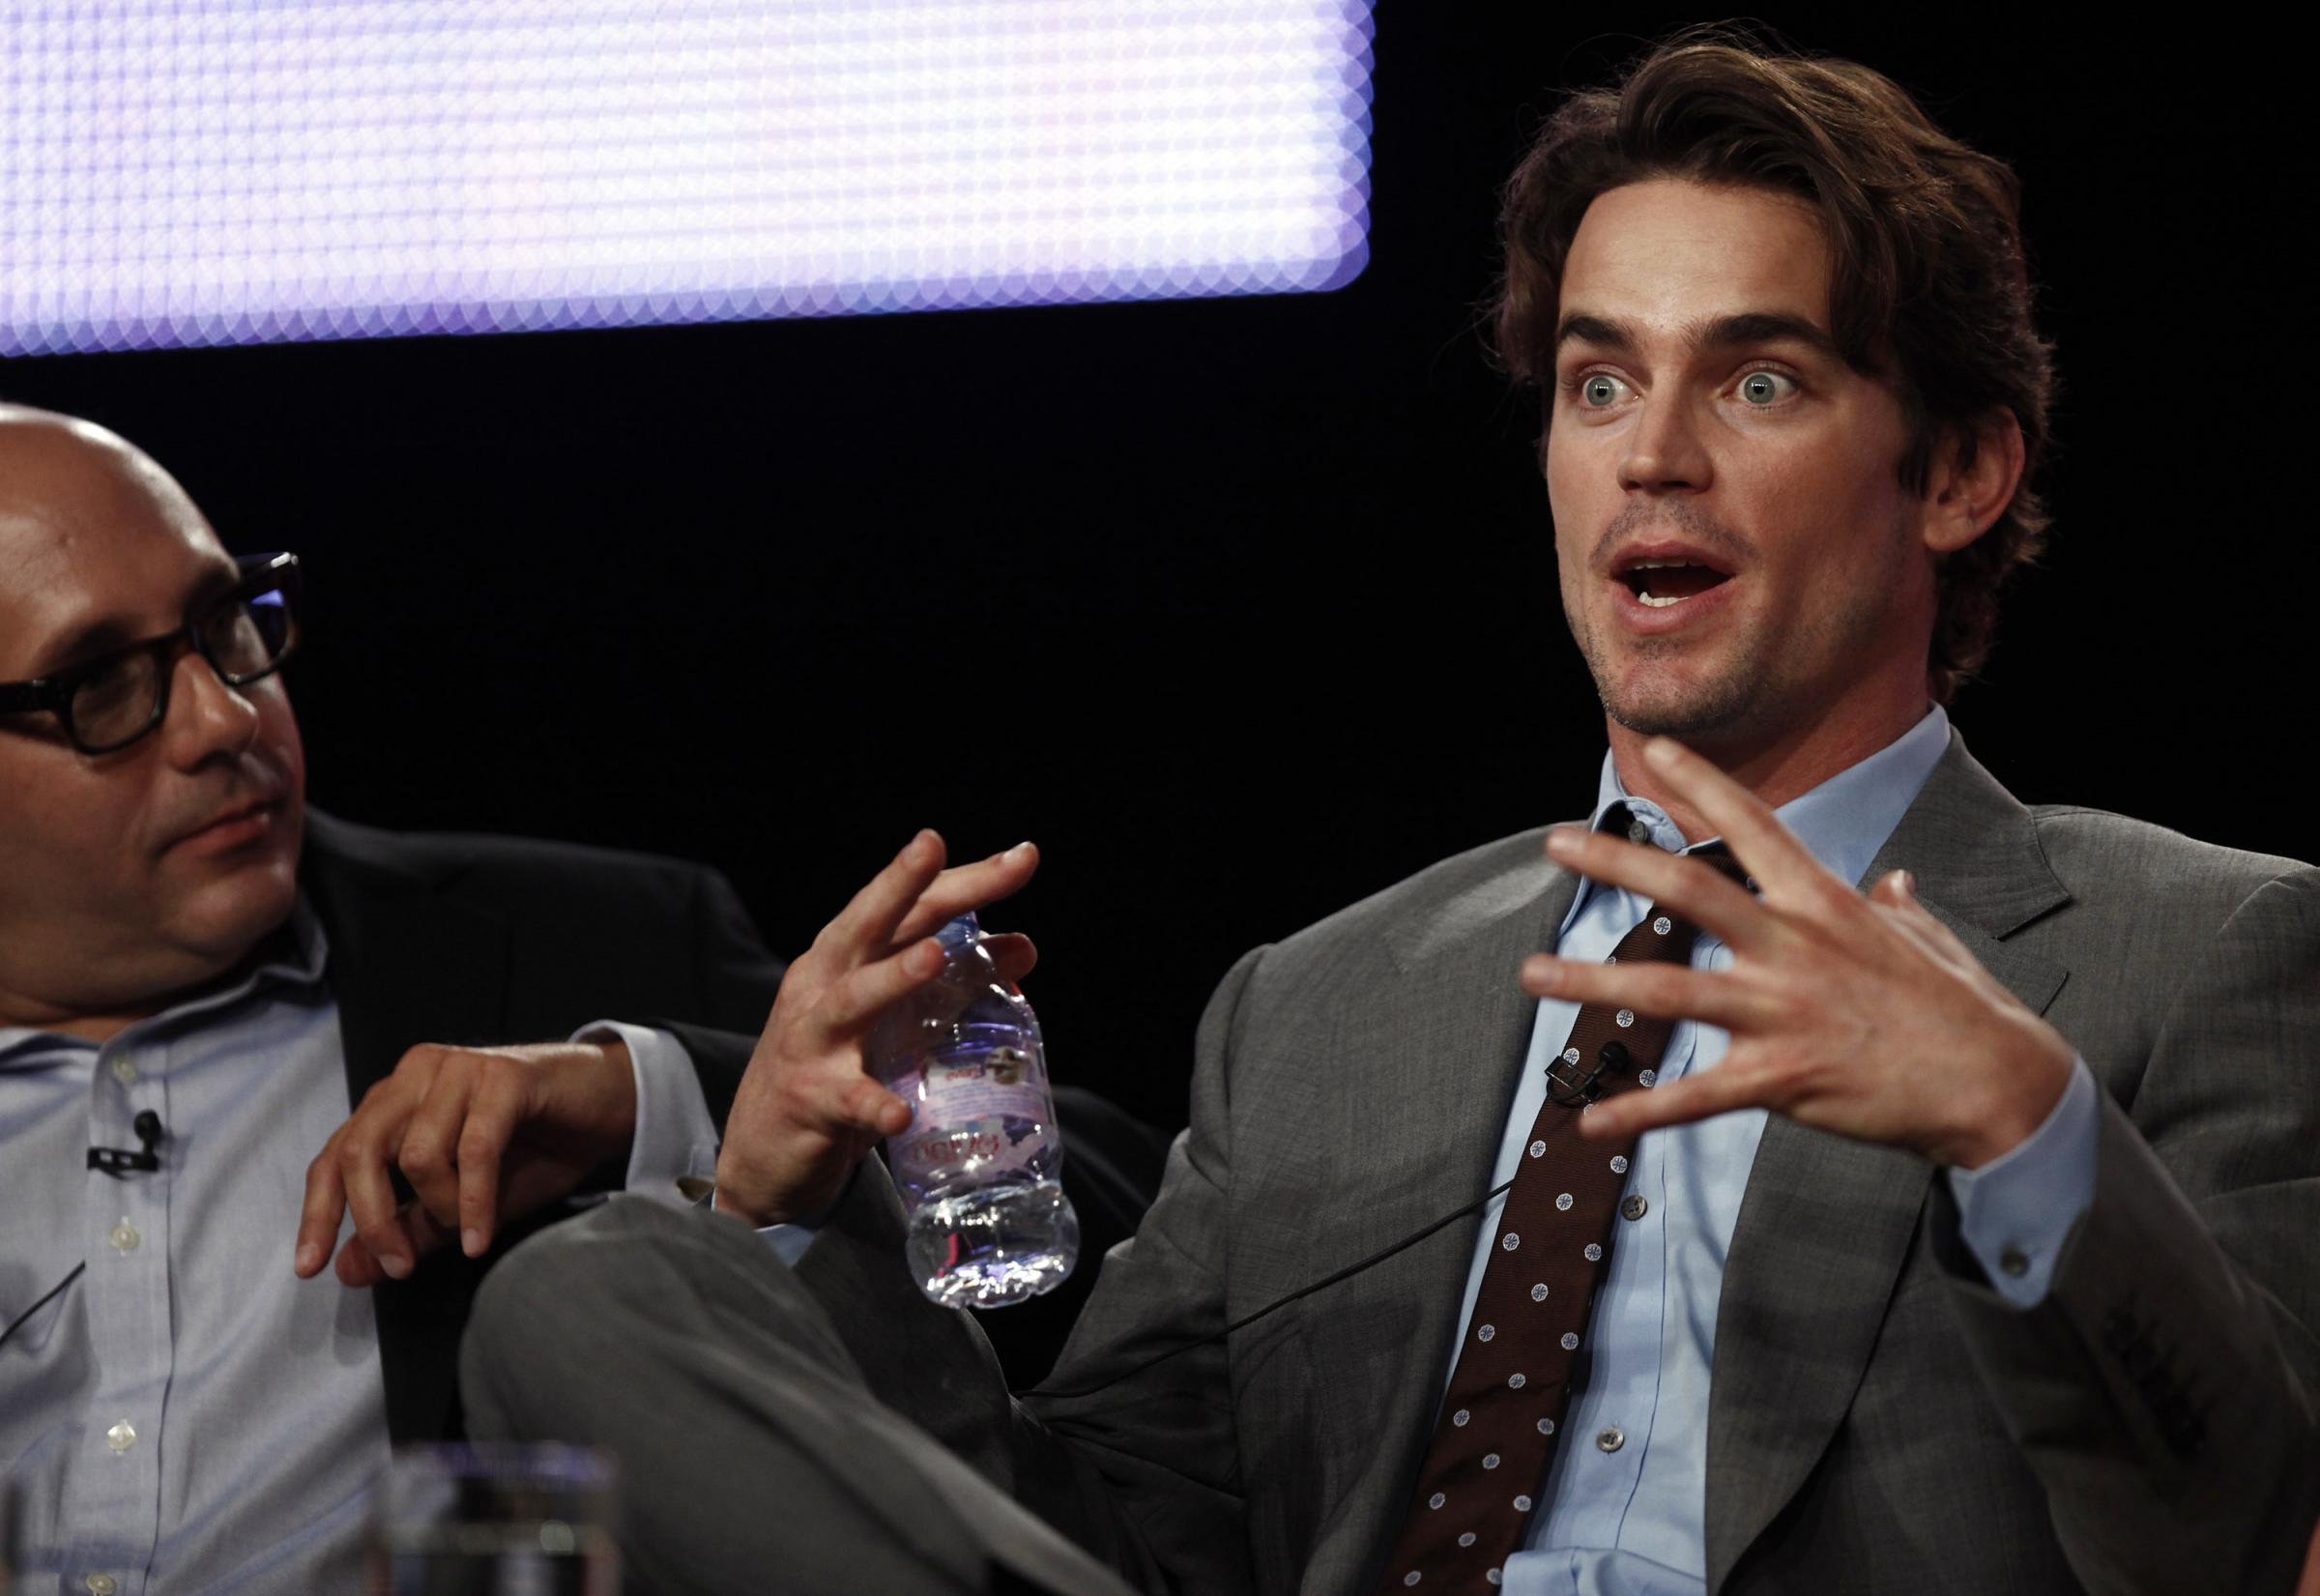 matt bomer indice di popolarit news puntate foto video e fotogallerie tvzap. Black Bedroom Furniture Sets. Home Design Ideas